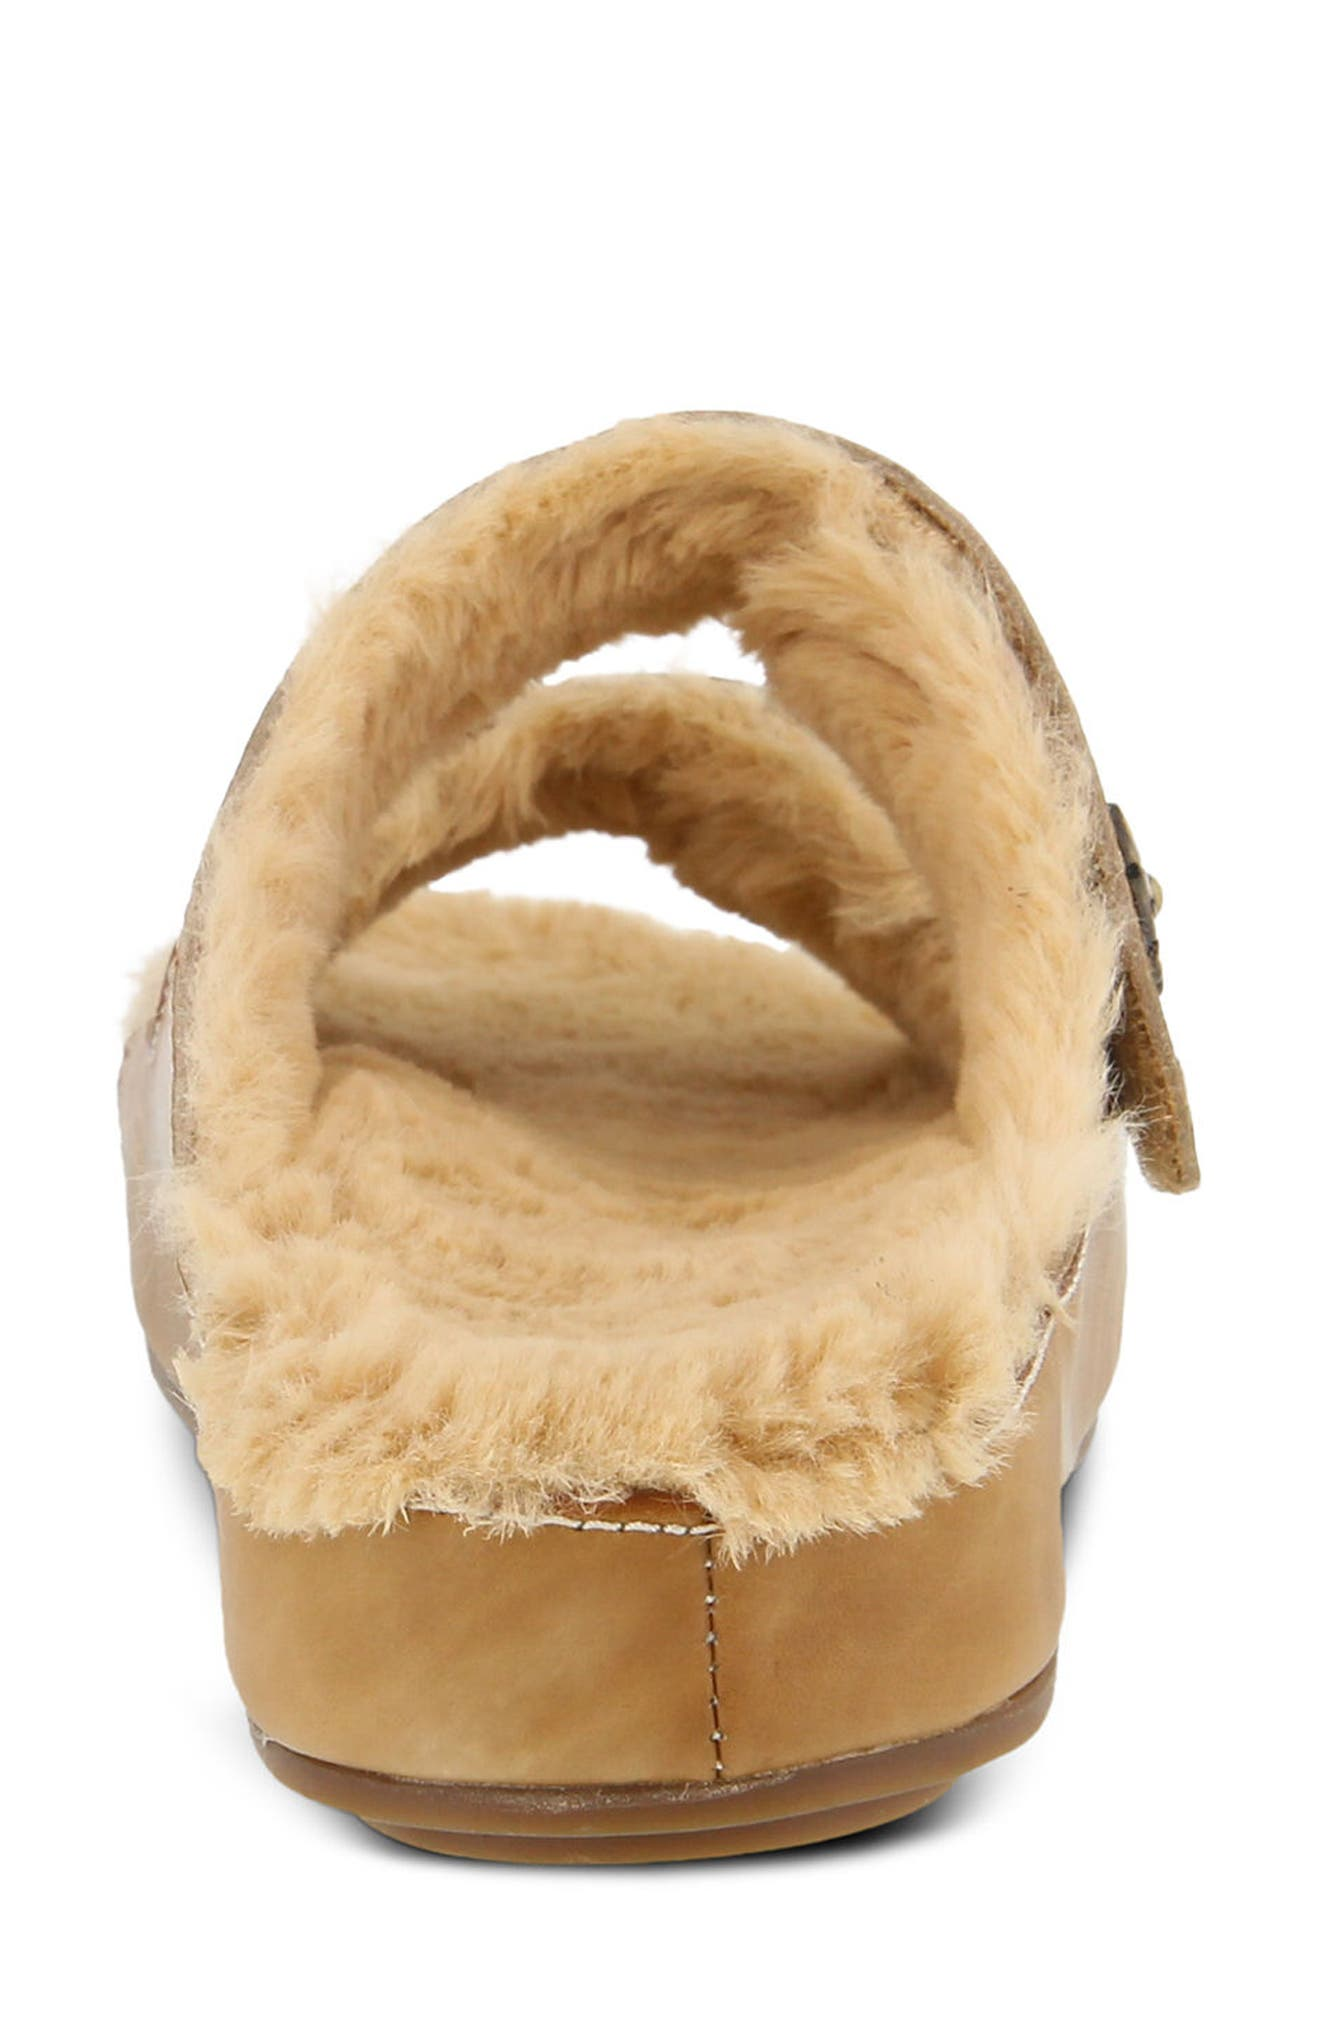 L'Artiste Furrie Sandal,                             Alternate thumbnail 4, color,                             Beige Leather